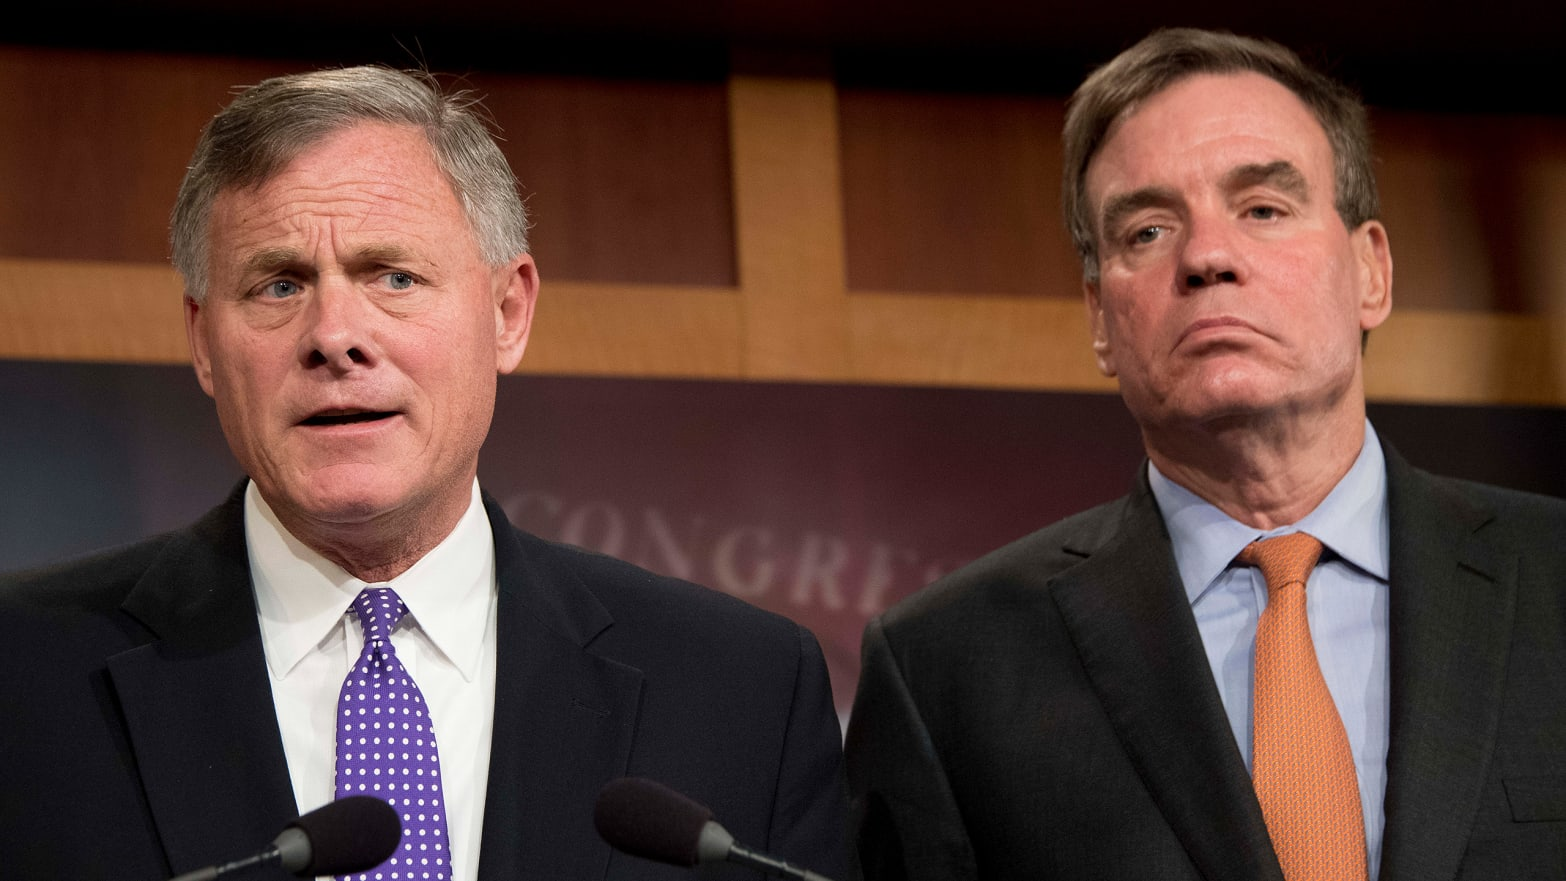 Senate Intelligence Chairman Richard Burr (L), R-N.C.; and Senate Intelligence Vice Chair Mark Warner, D-Va., hold a news conference on the status of the committee's inquiry into Russian interference in the 2016 election.